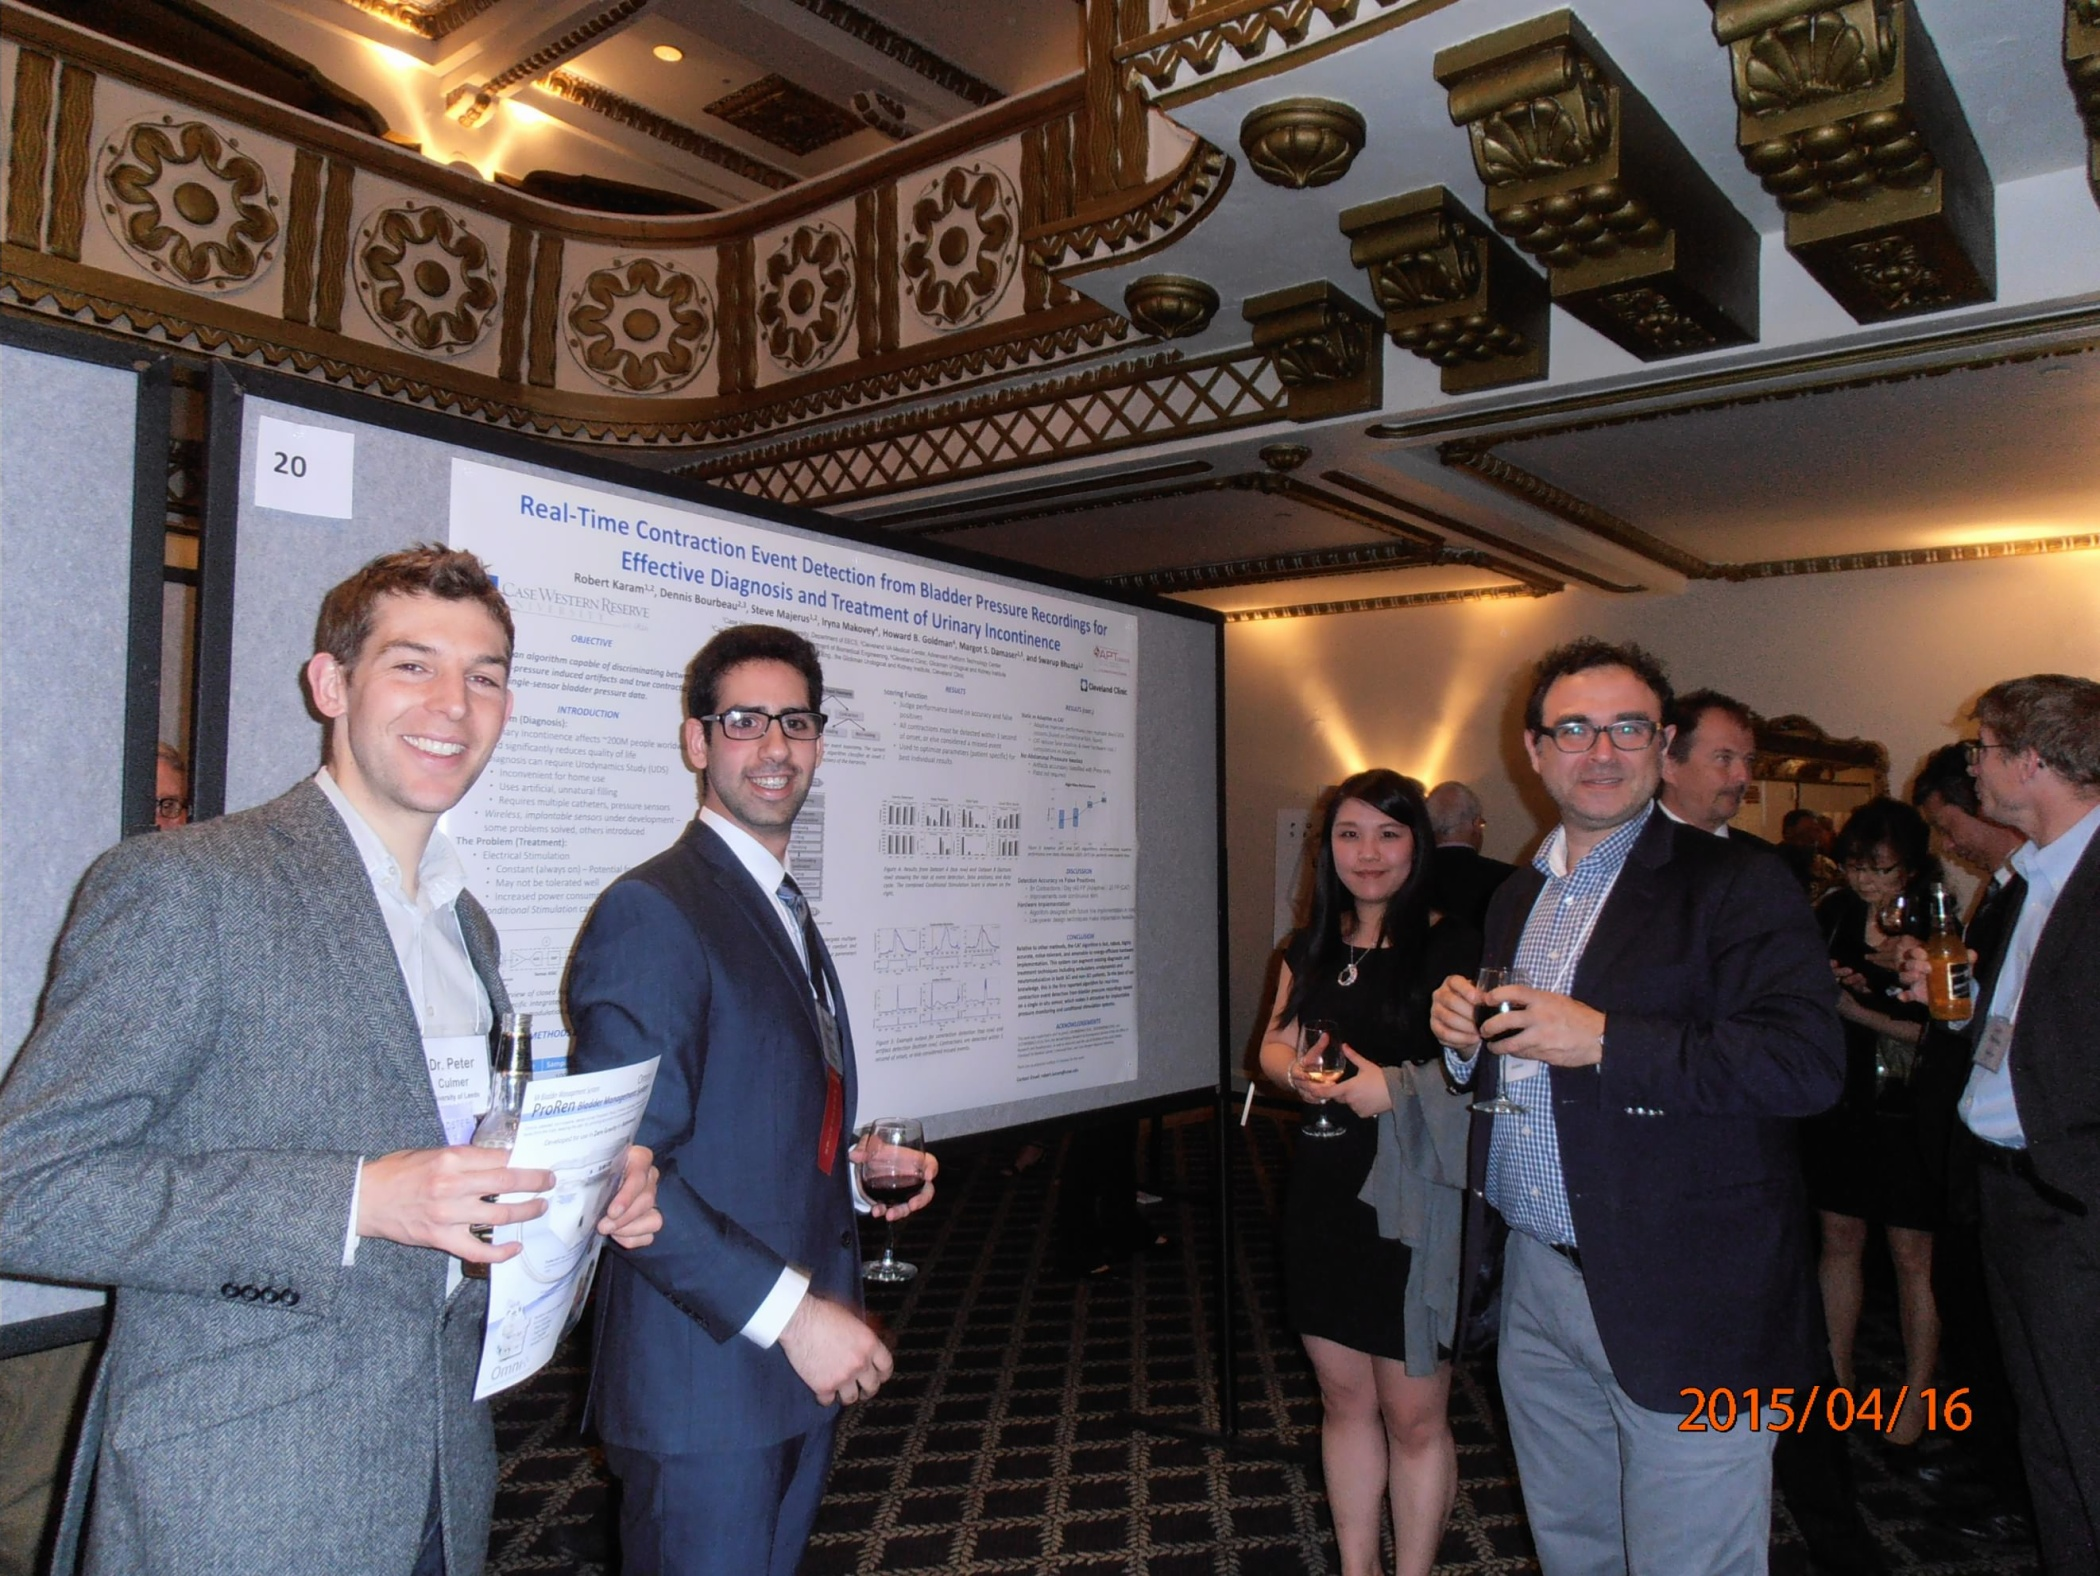 Innovating for Continence 2015 Poster Session